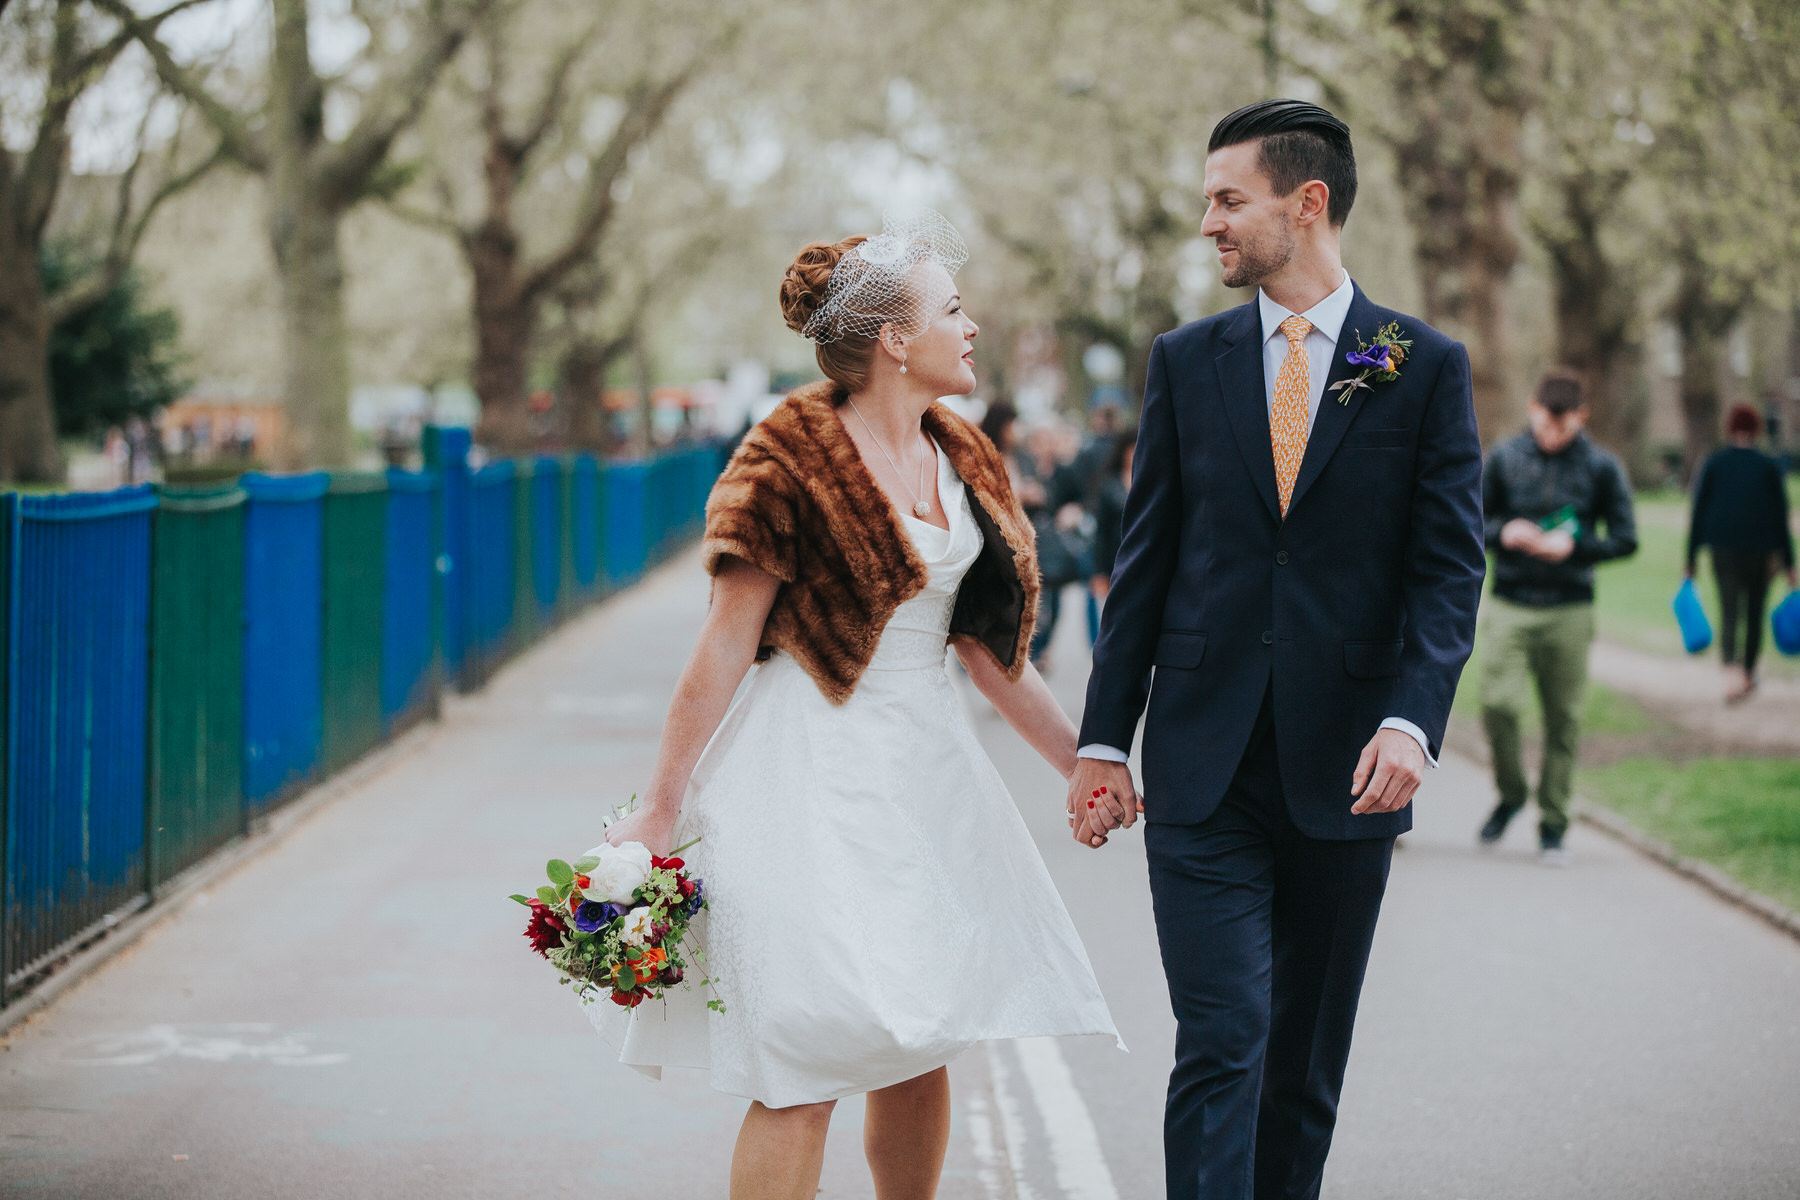 MS-Londesborough-Pub-wedding-Hackney-alternative-photographer-45-wedding-photo-quirky-groom-bride-holding-hands-London-Fields-reportage.jpg